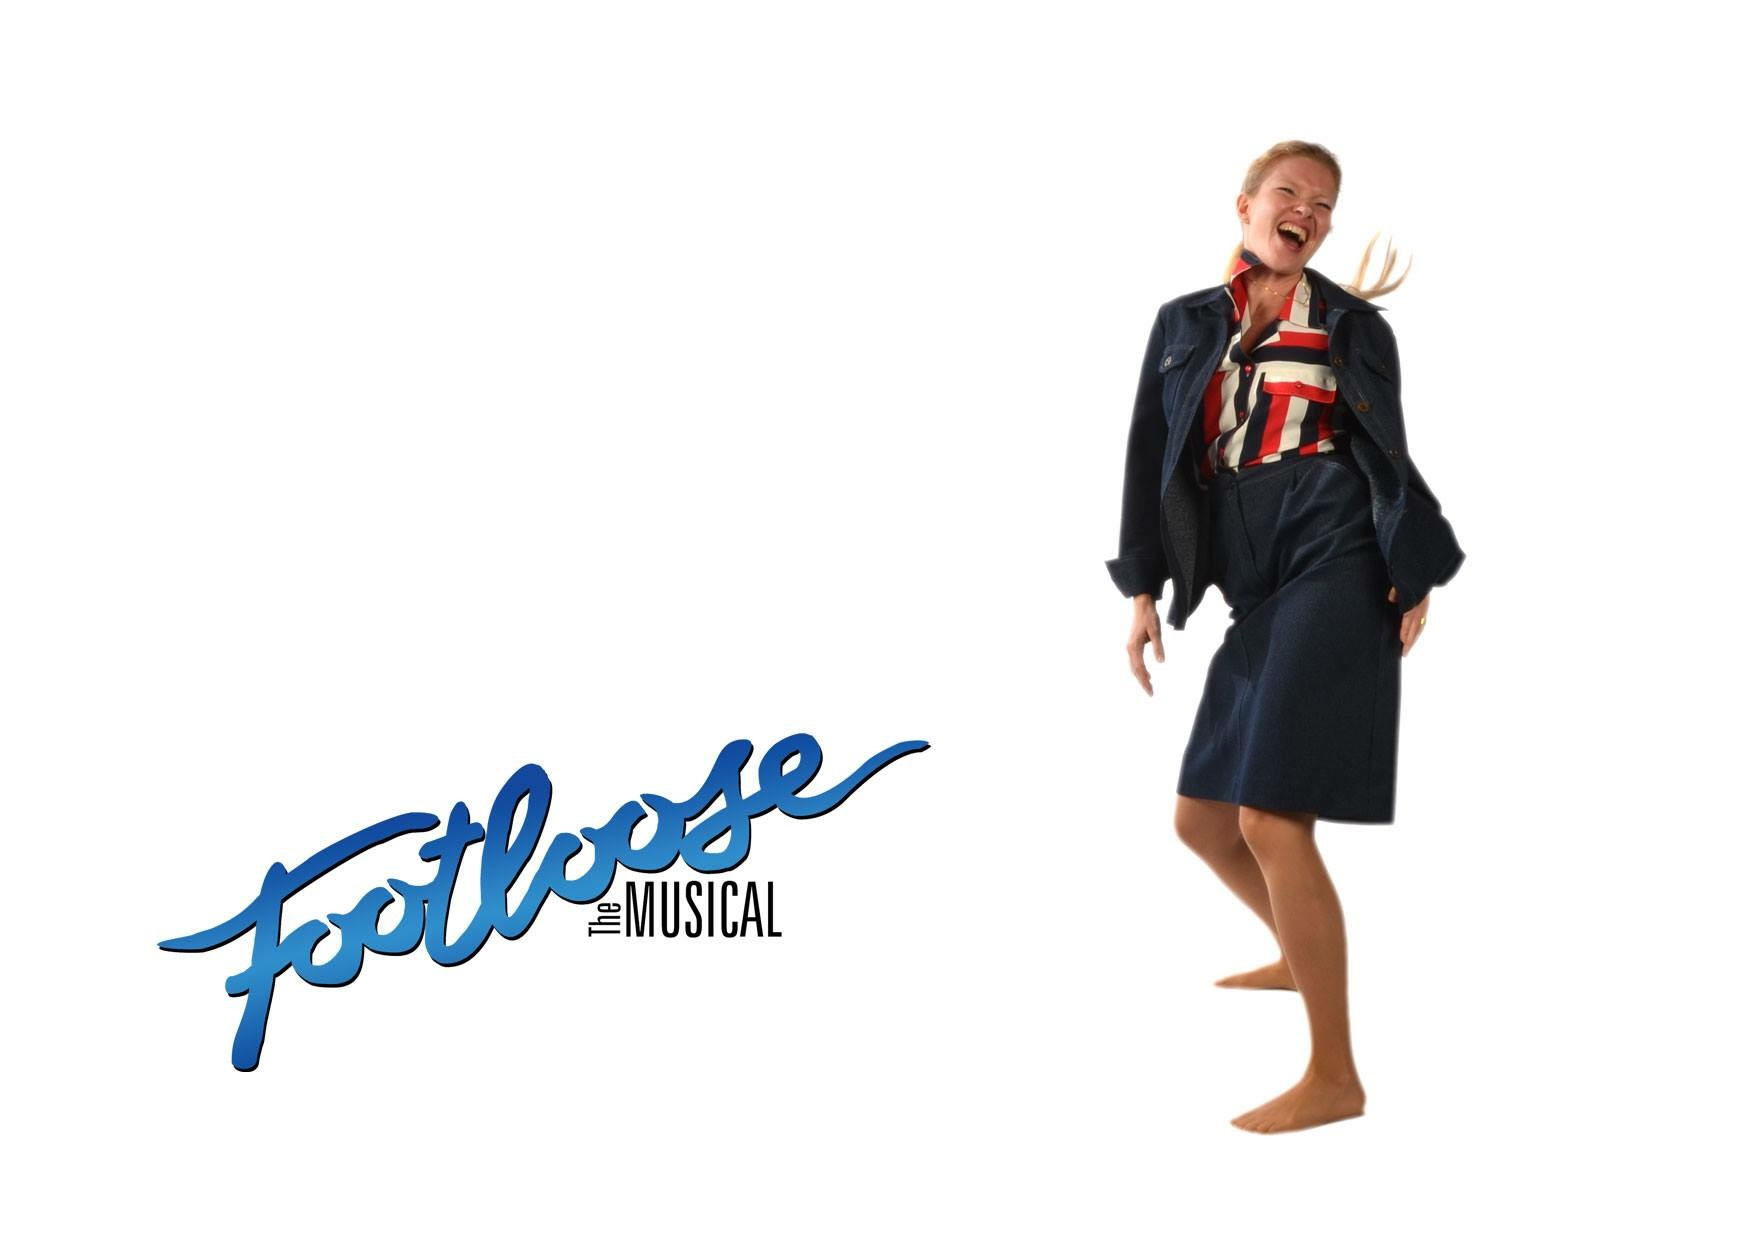 Dansende Ethel fra musicalen Footloose.